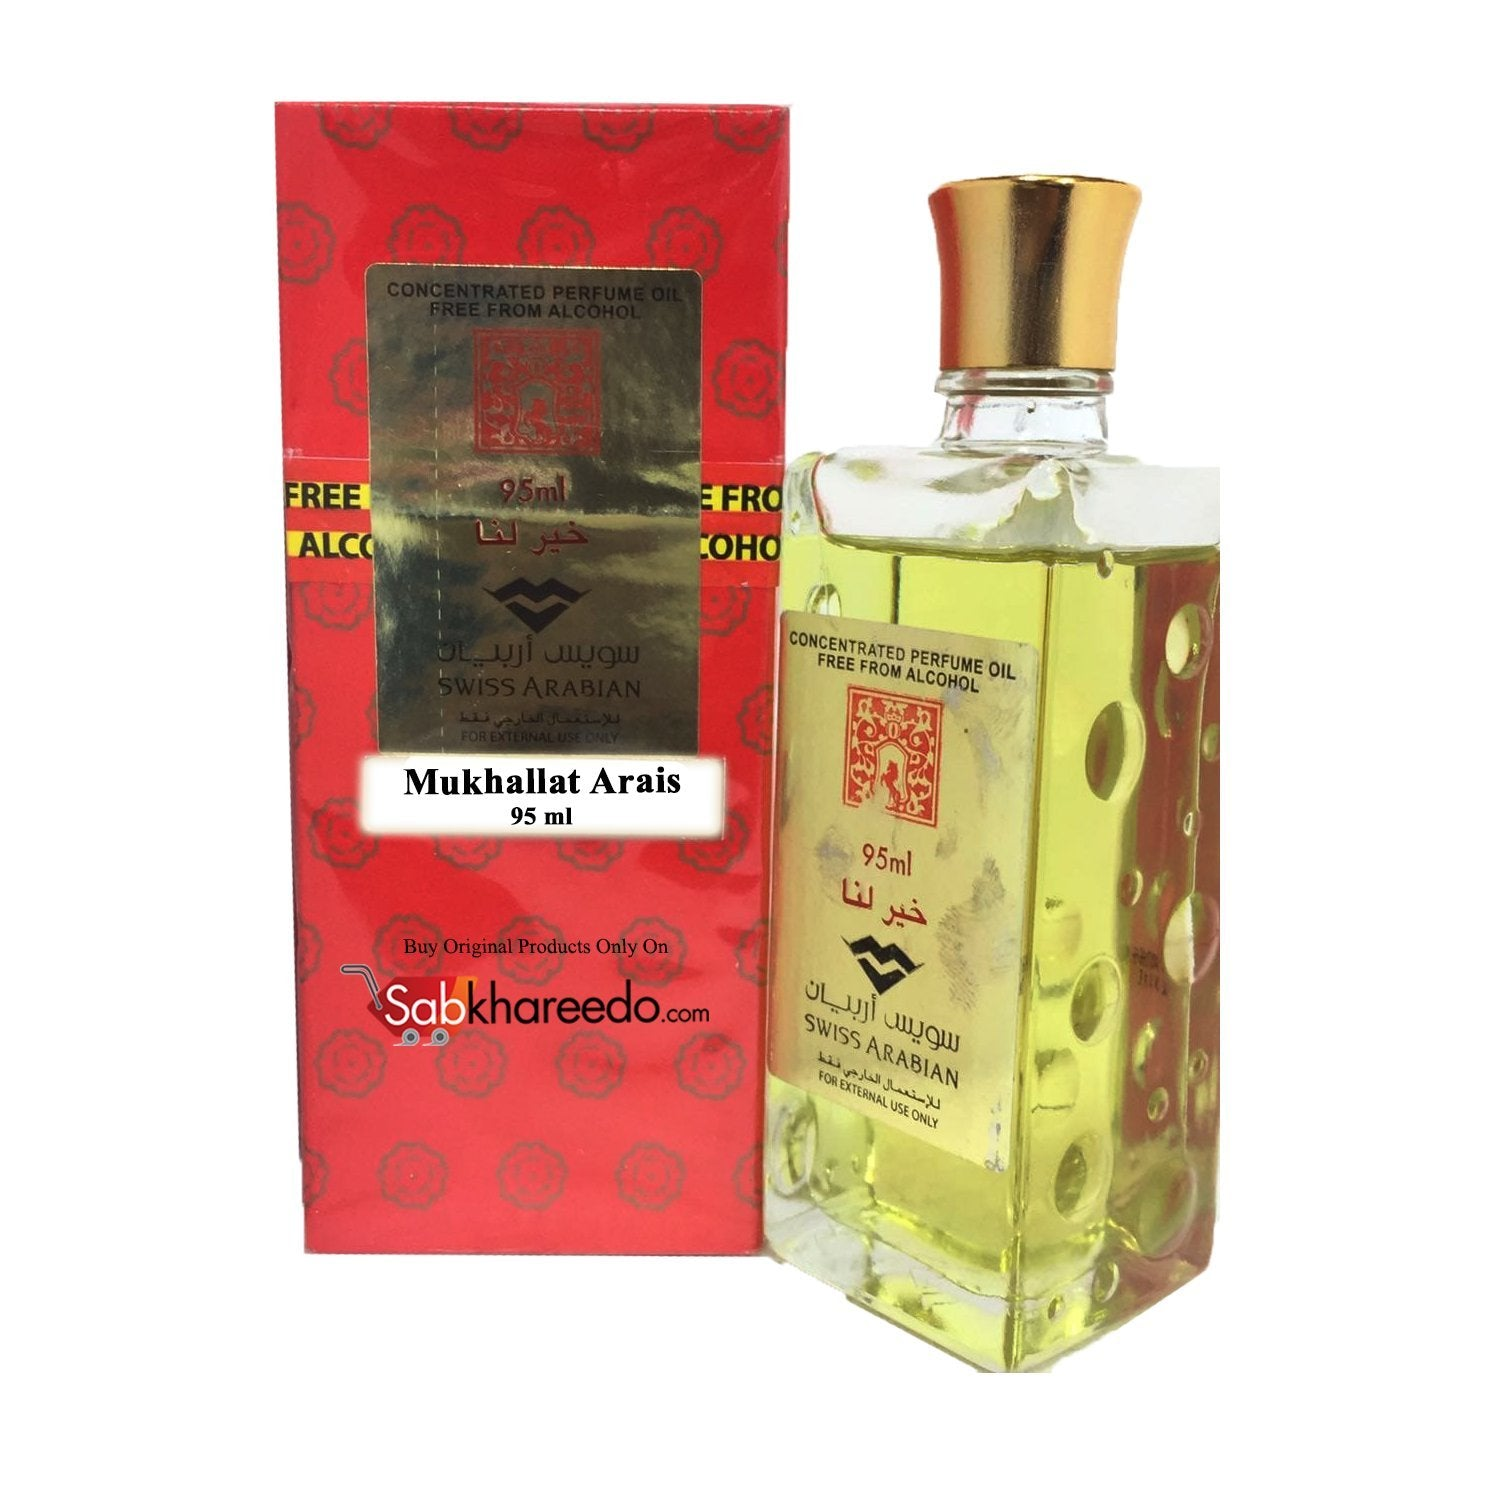 Swiss Arabian Mukhallat Arais Attar - 95ml